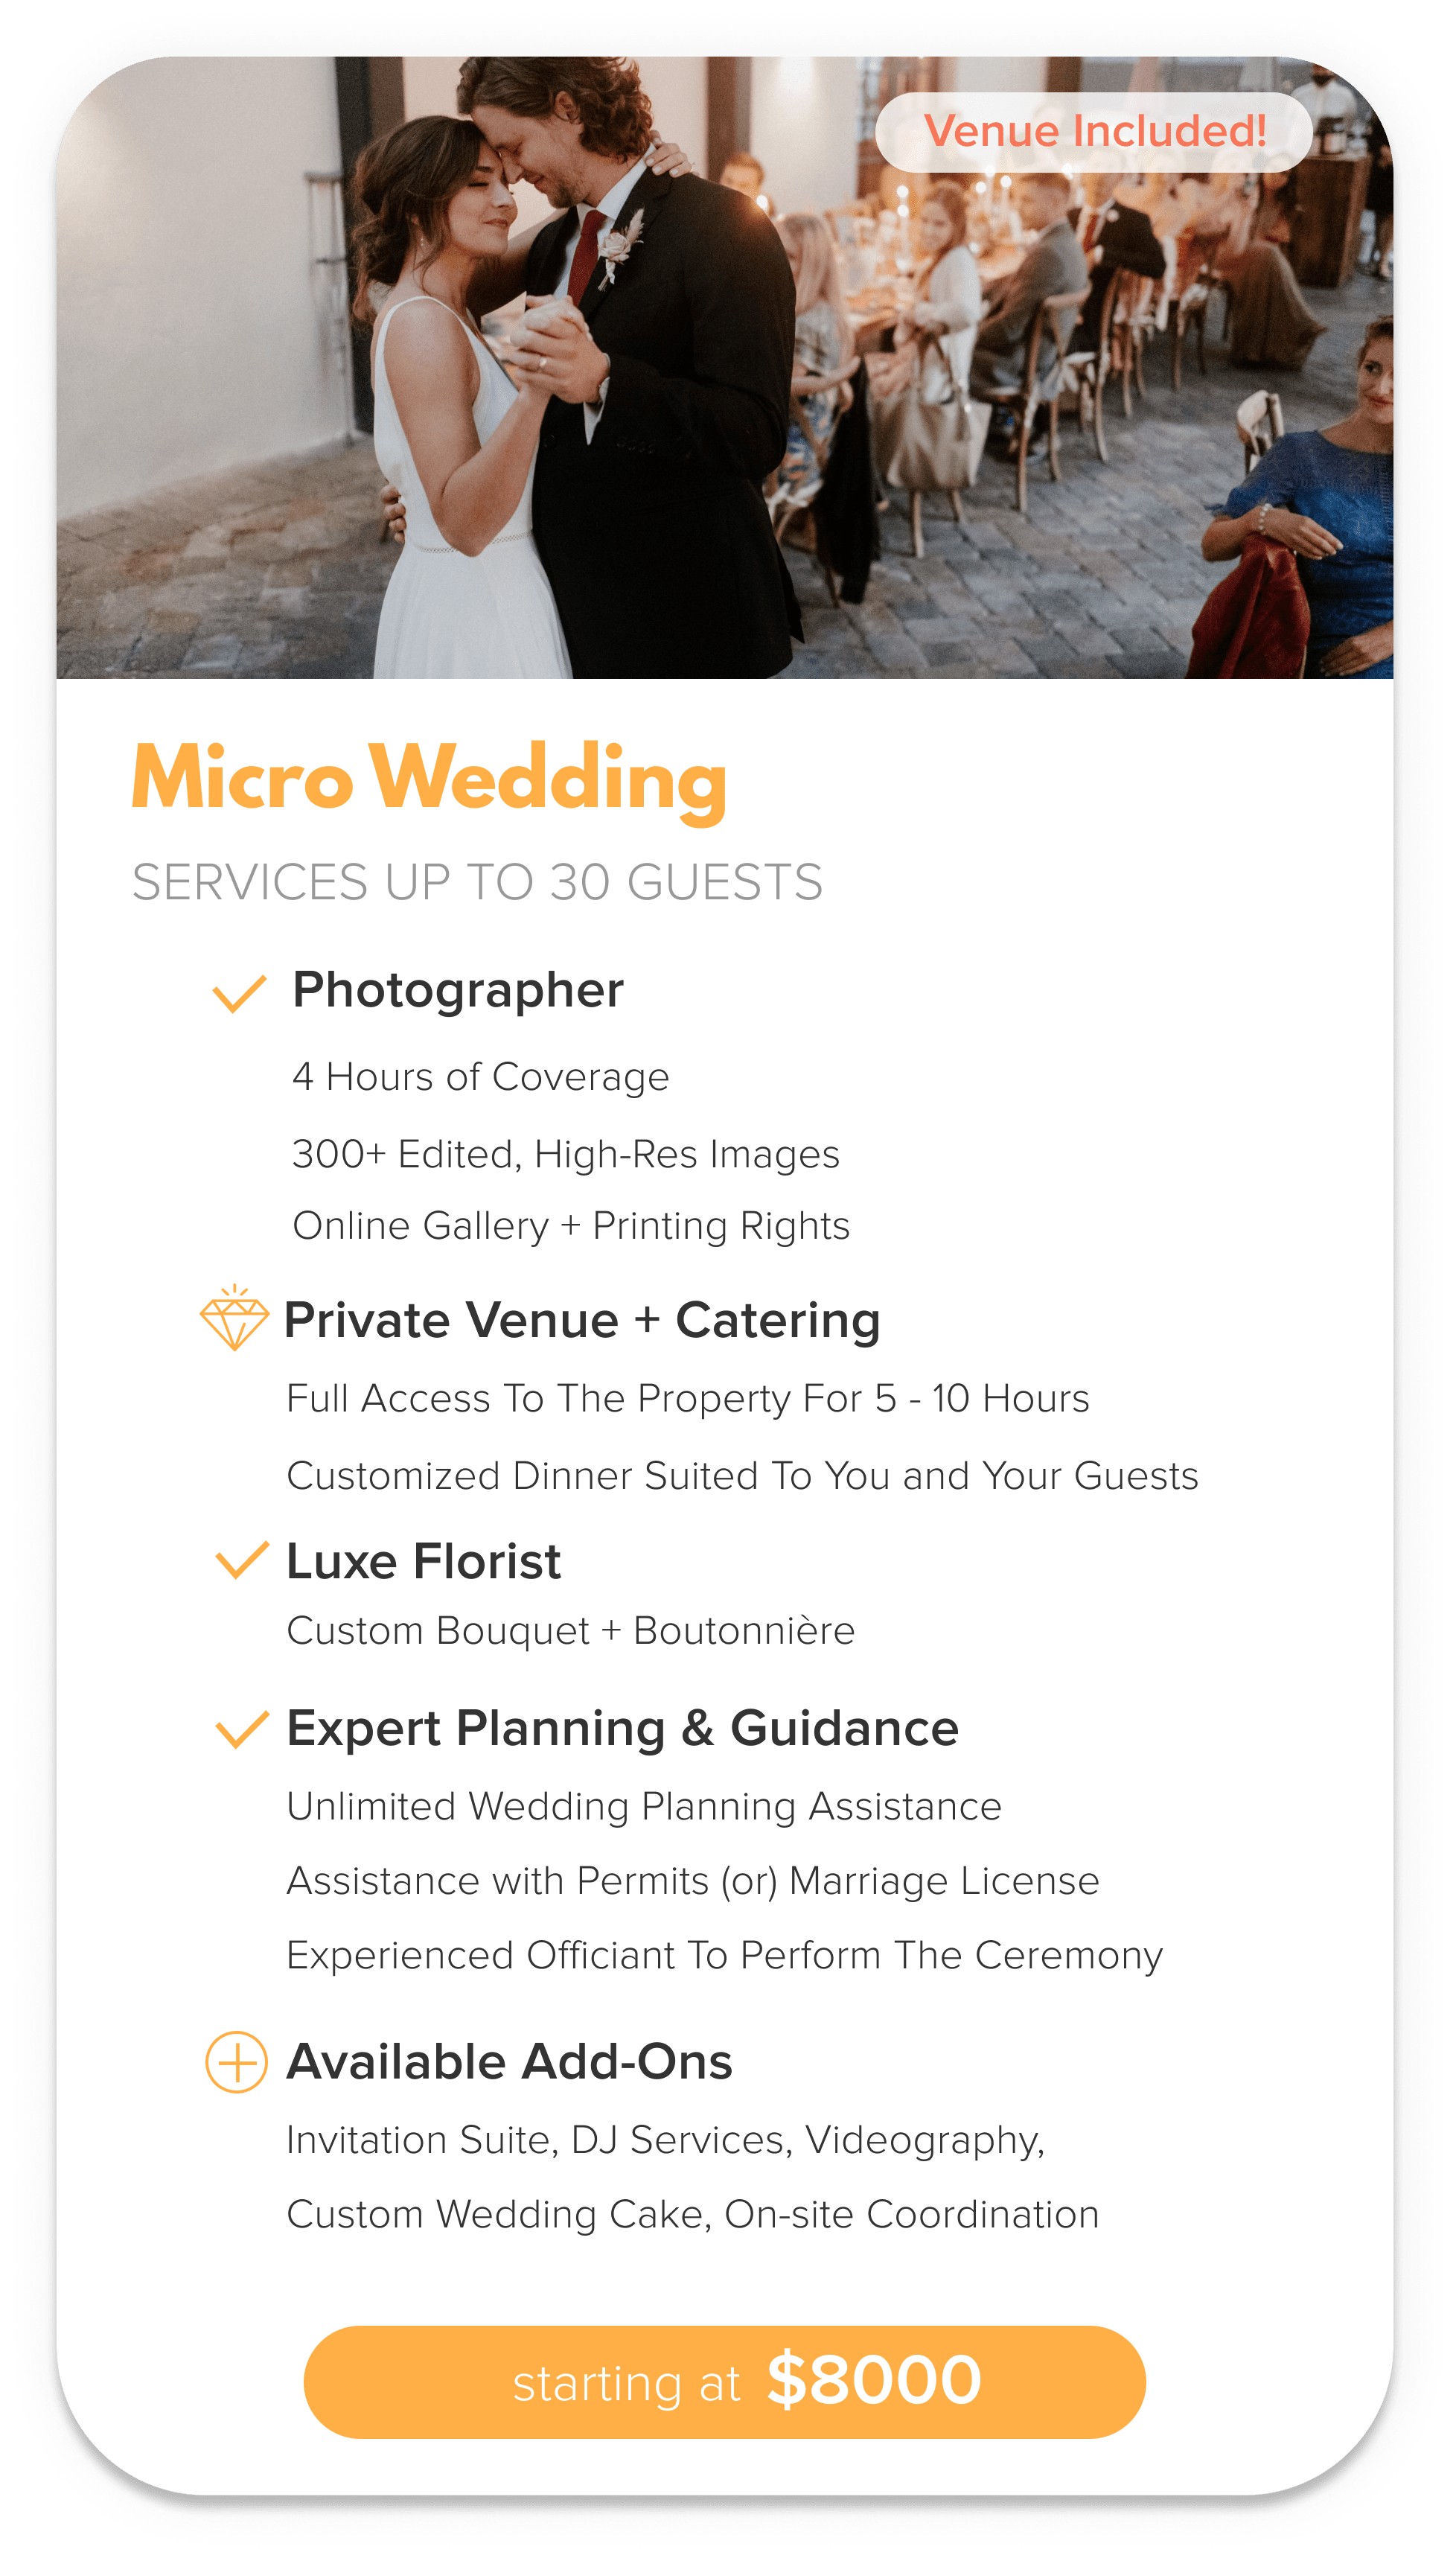 Micro Wedding Package